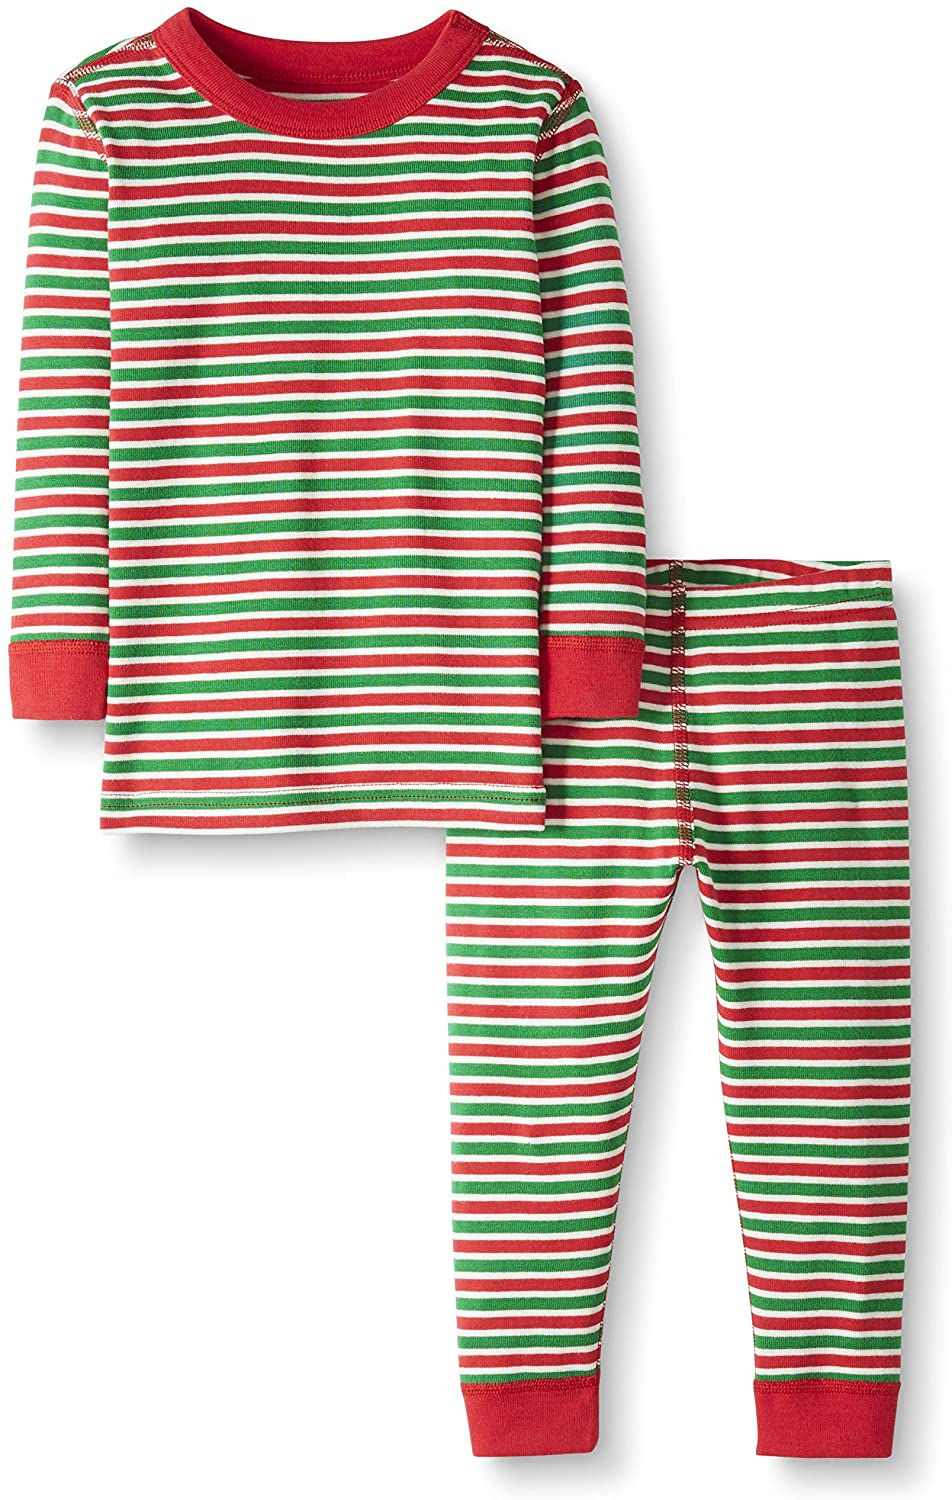 Moon and Back by Hanna Andersson Unisex Baby 2 Piece Long Sleeve Pajama Set